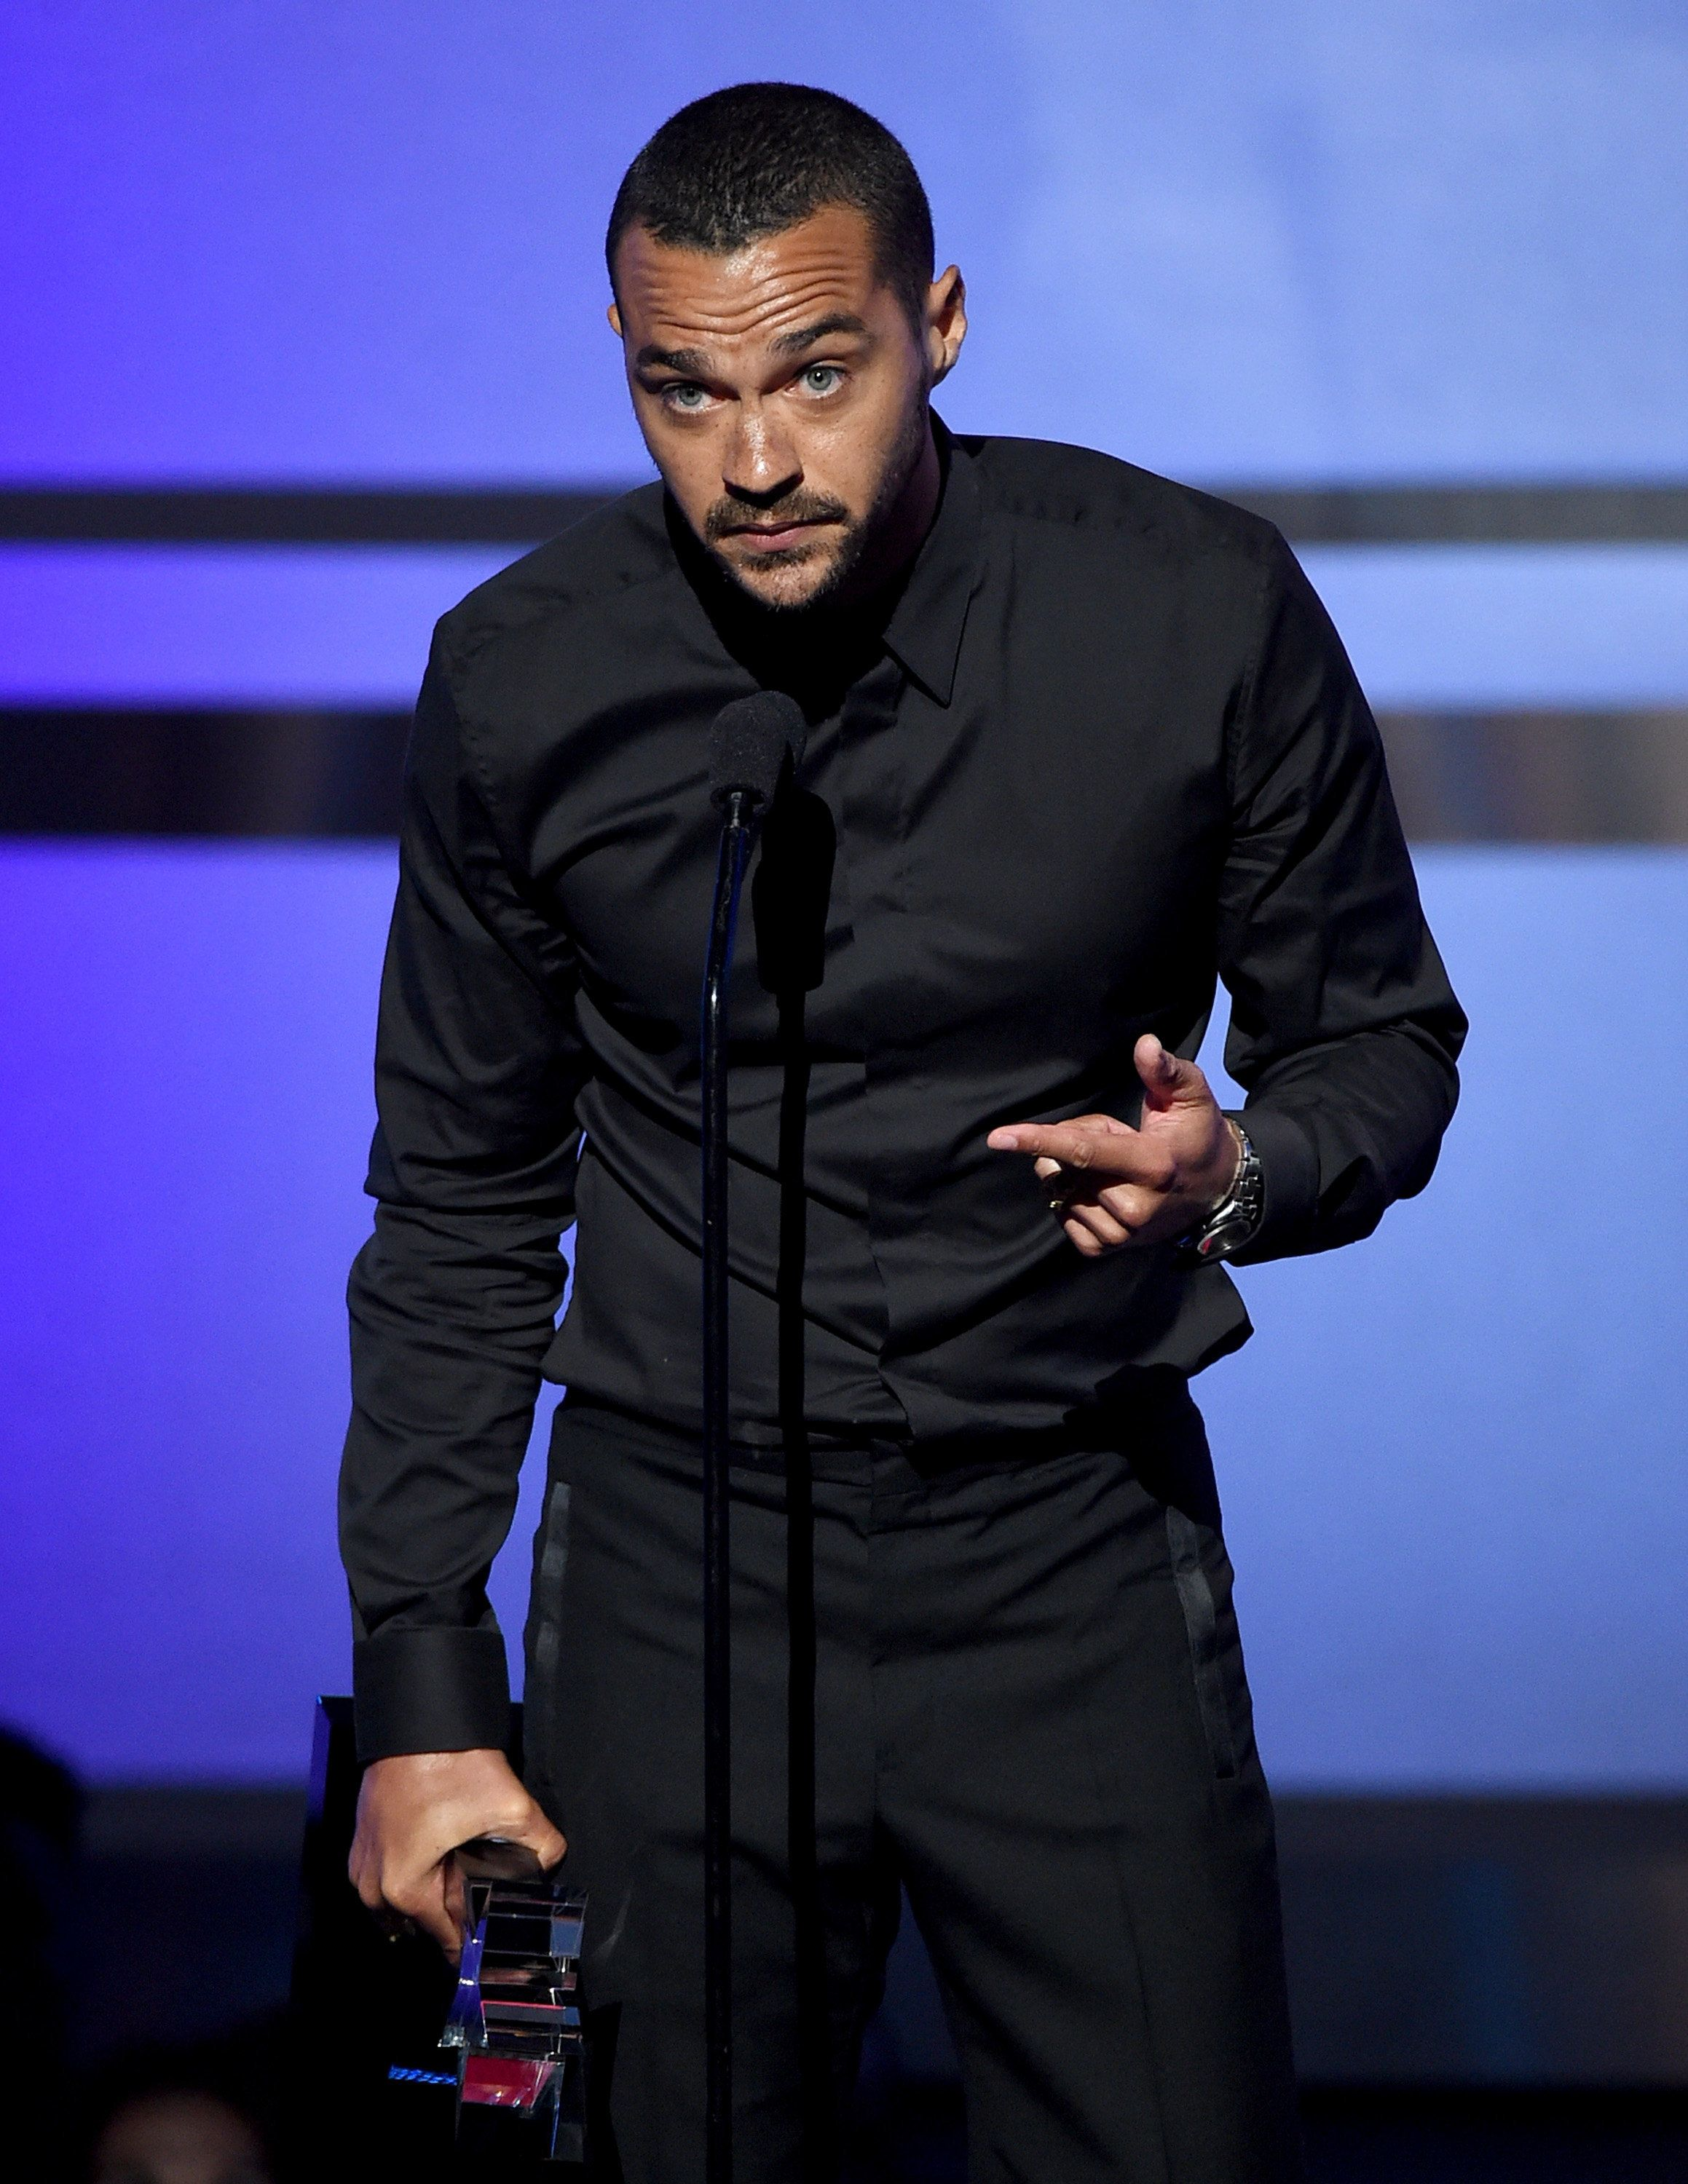 LOS ANGELES, CA - JUNE 26:  Honoree Jesse Williams accepts the Humanitarian Award onstage during the 2016 BET Awards at the Microsoft Theater on June 26, 2016 in Los Angeles, California.  (Photo by Kevin Winter/BET/Getty Images for BET)